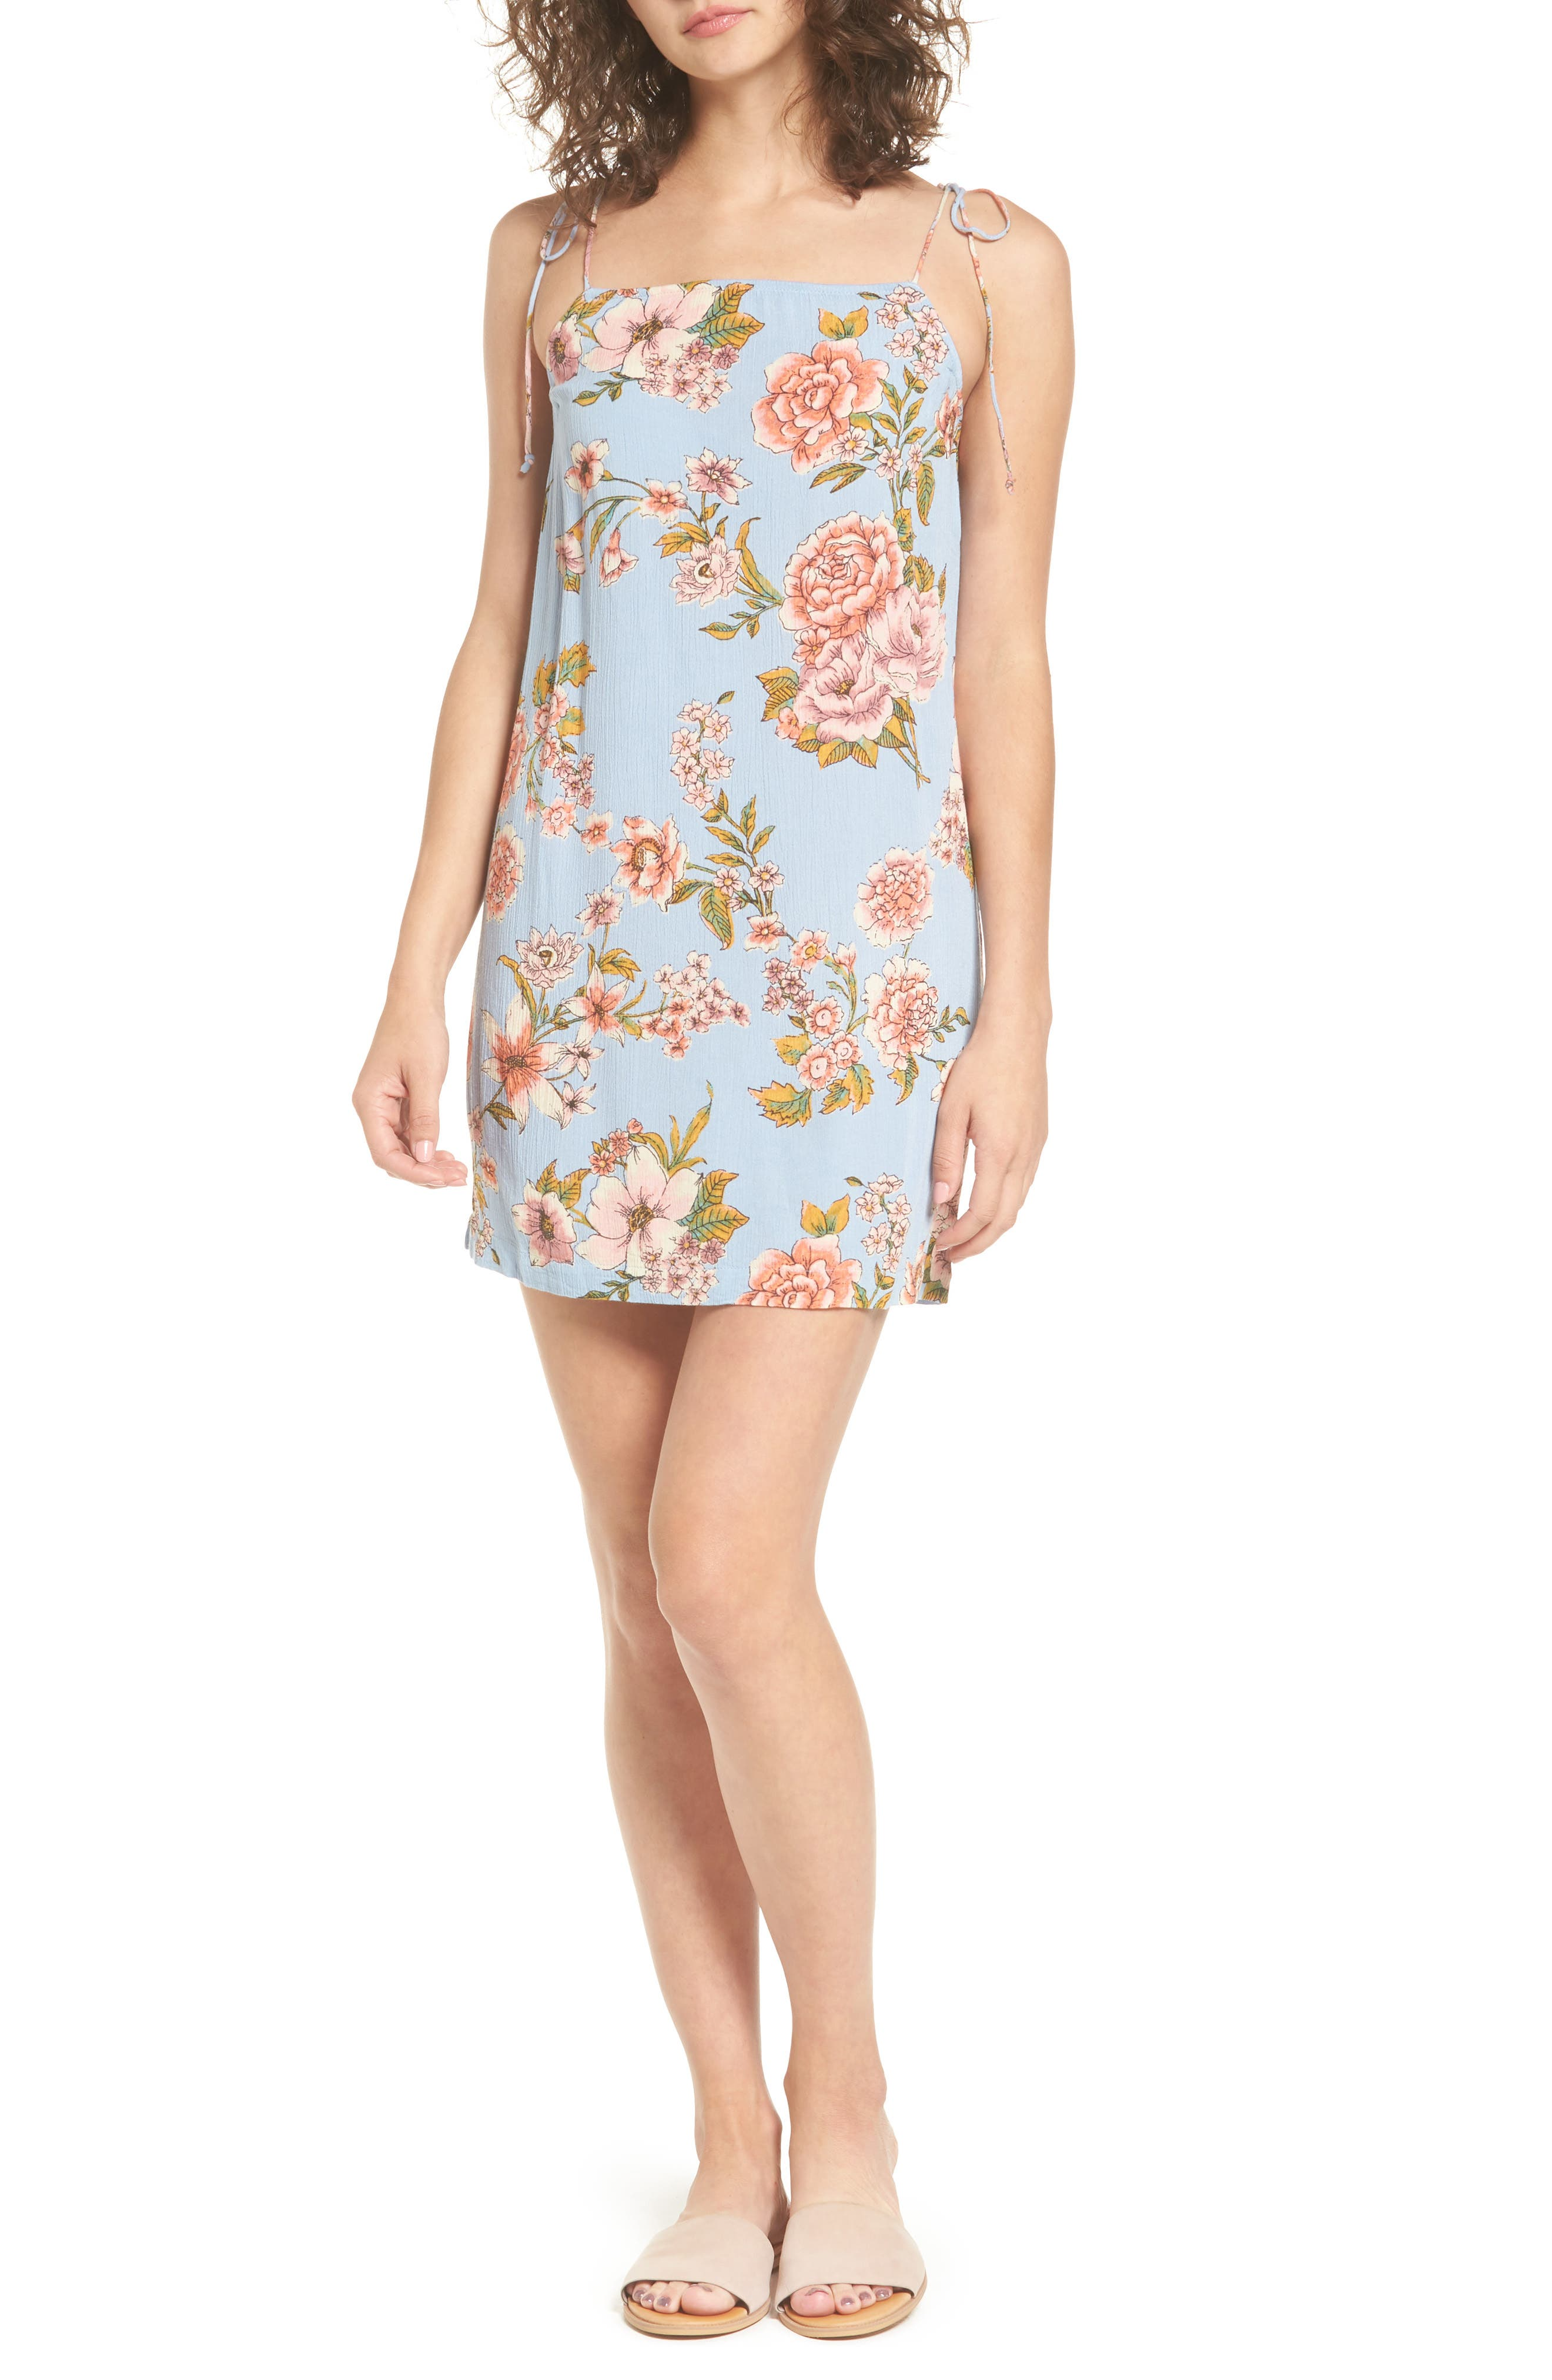 Alternate Image 1 Selected - Billabong Night Out Floral Camisole Dress